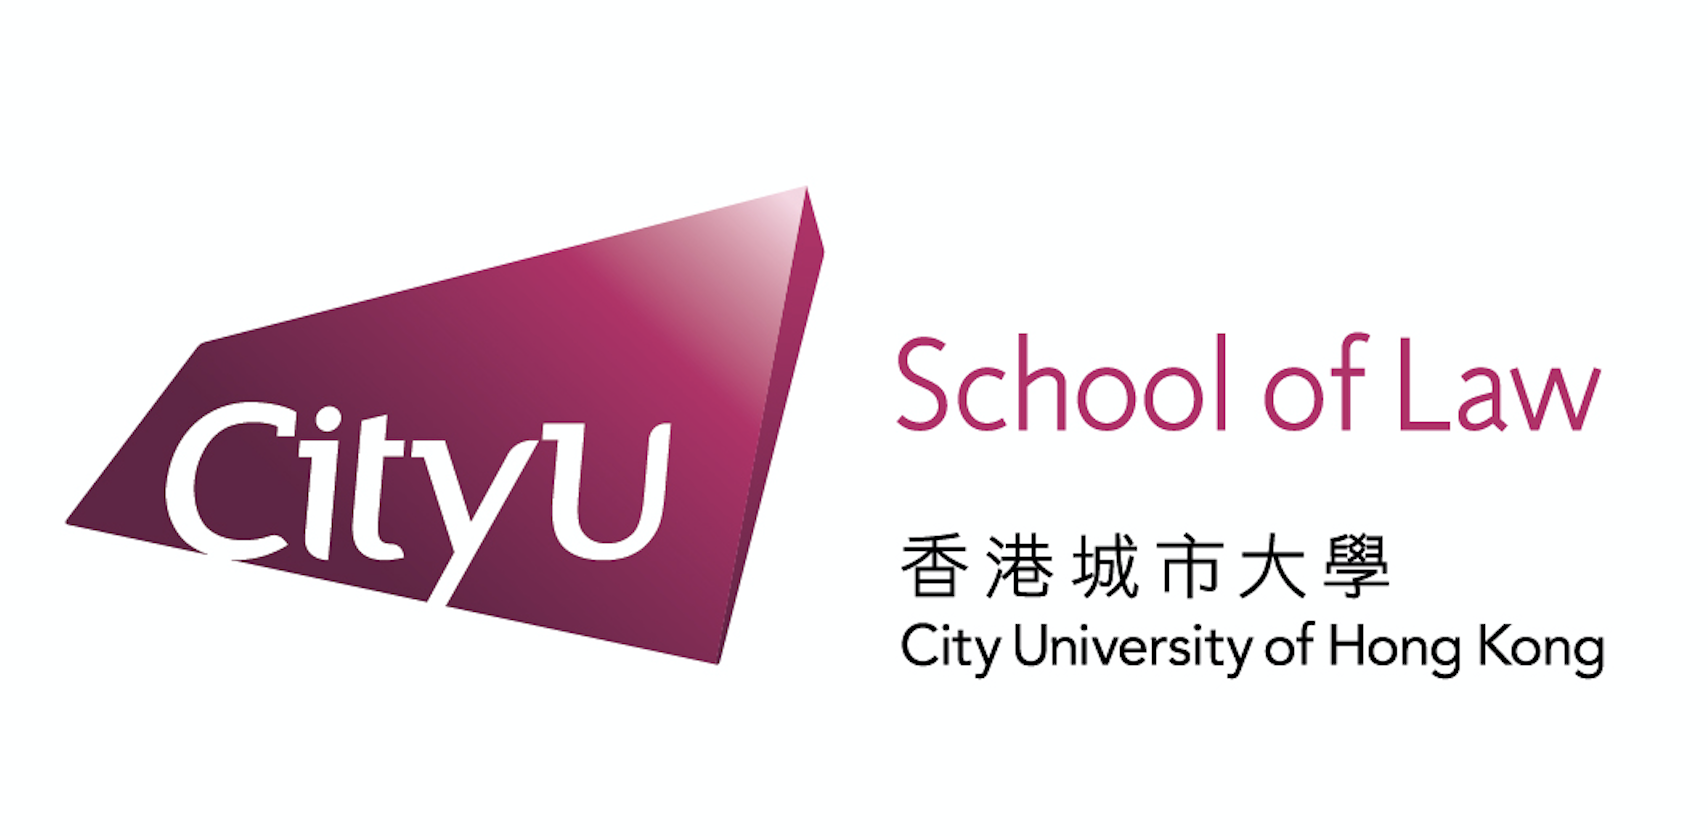 City University of Hong Kong - School of Law